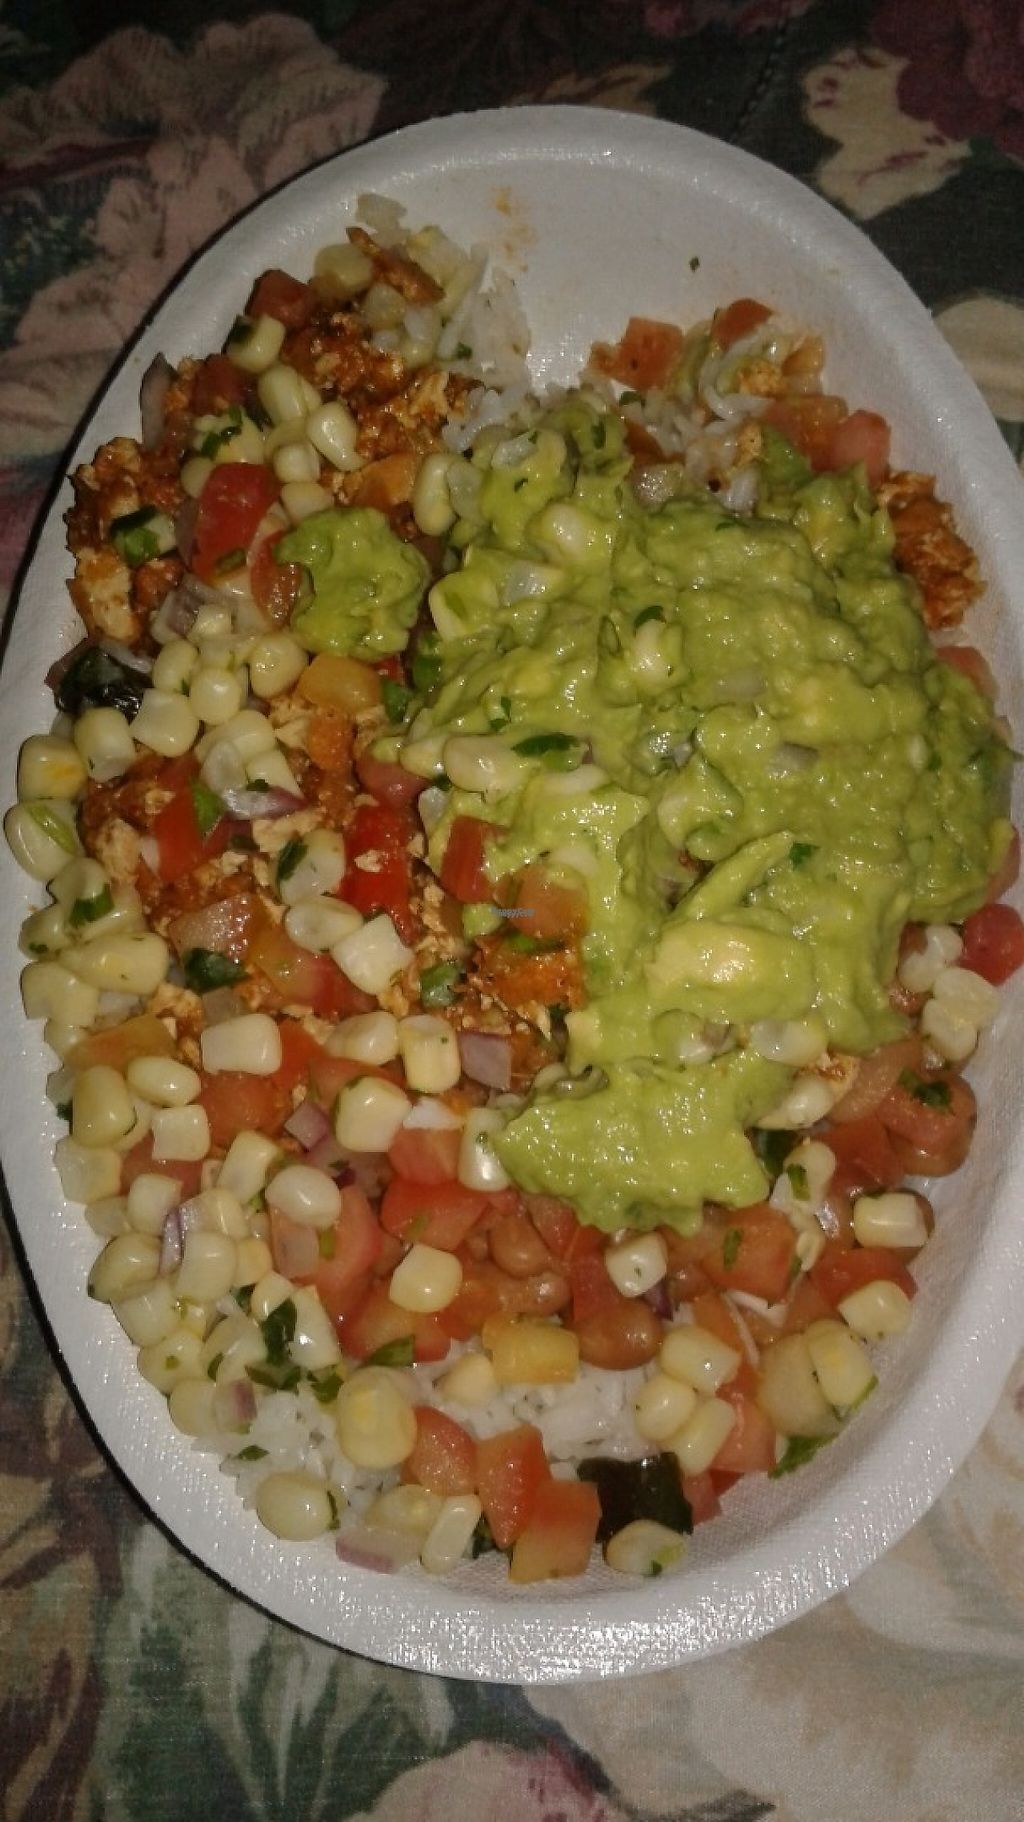 """Photo of Chipotle   by <a href=""""/members/profile/anastronomy"""">anastronomy</a> <br/>Extra  $ for guacamole  <br/> April 27, 2017  - <a href='/contact/abuse/image/84240/252886'>Report</a>"""